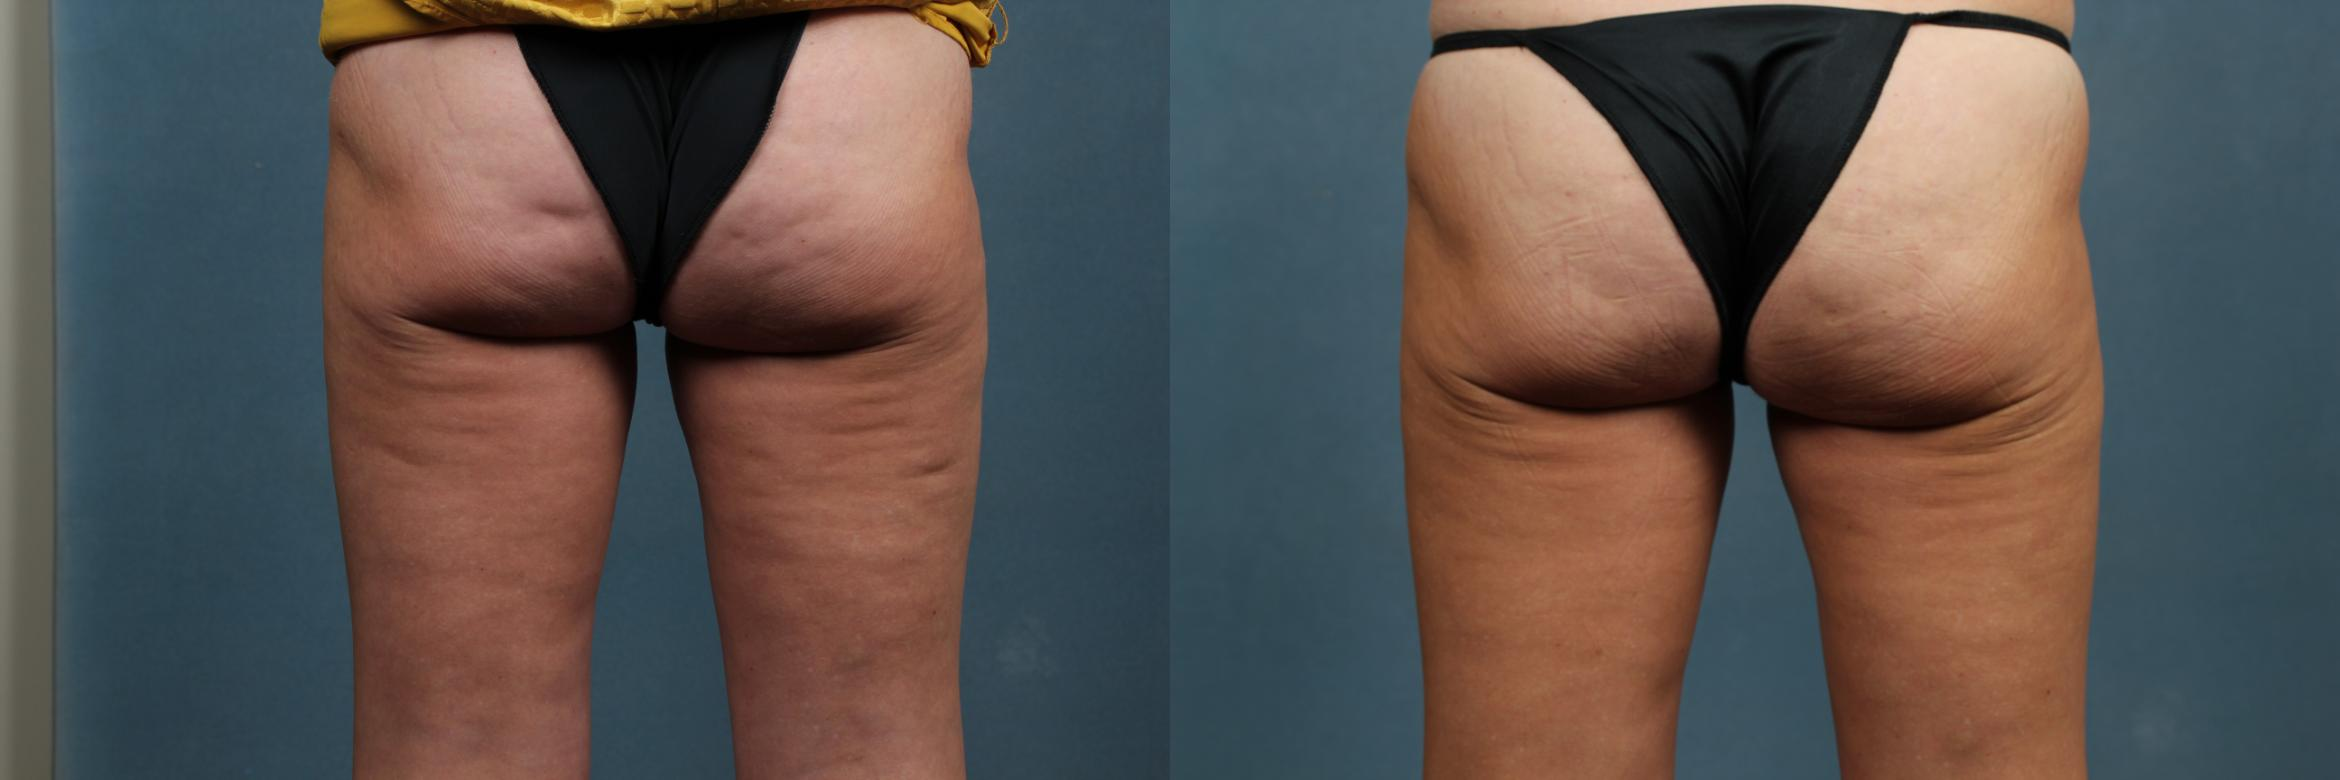 Cellulite Treatments Case 267 Before & After View #1 | Louisville, KY | CaloAesthetics® Plastic Surgery Center